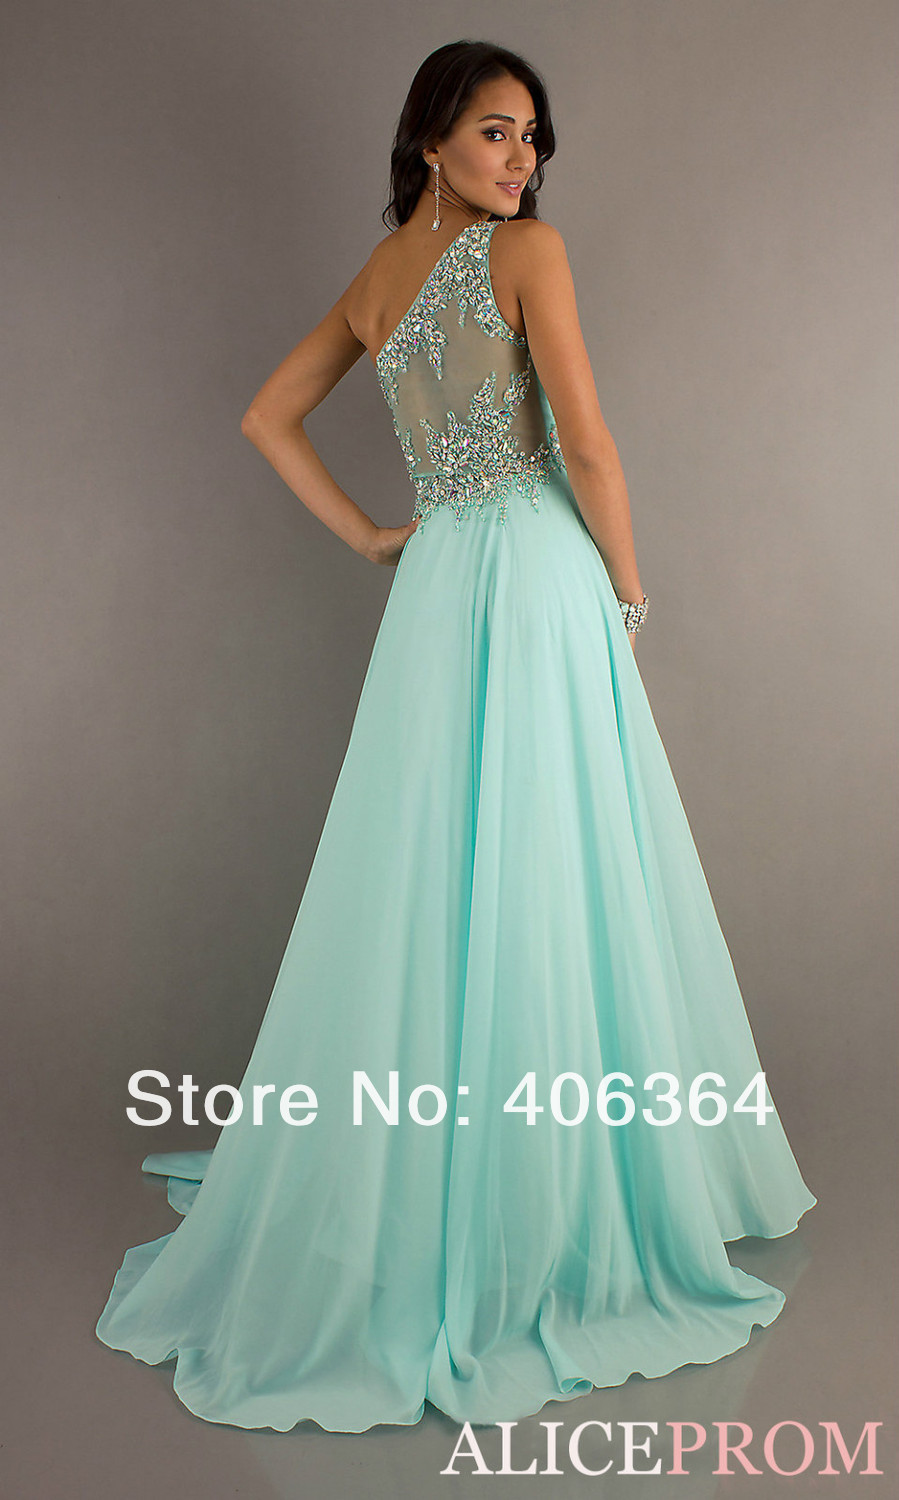 New Hot One Shoulder Sheer Back Sweetheart Crystal Mint Green Chiffon Long Pageant Prom Dresses Formal Gown New Fashion 2013 on Aliexpress.com